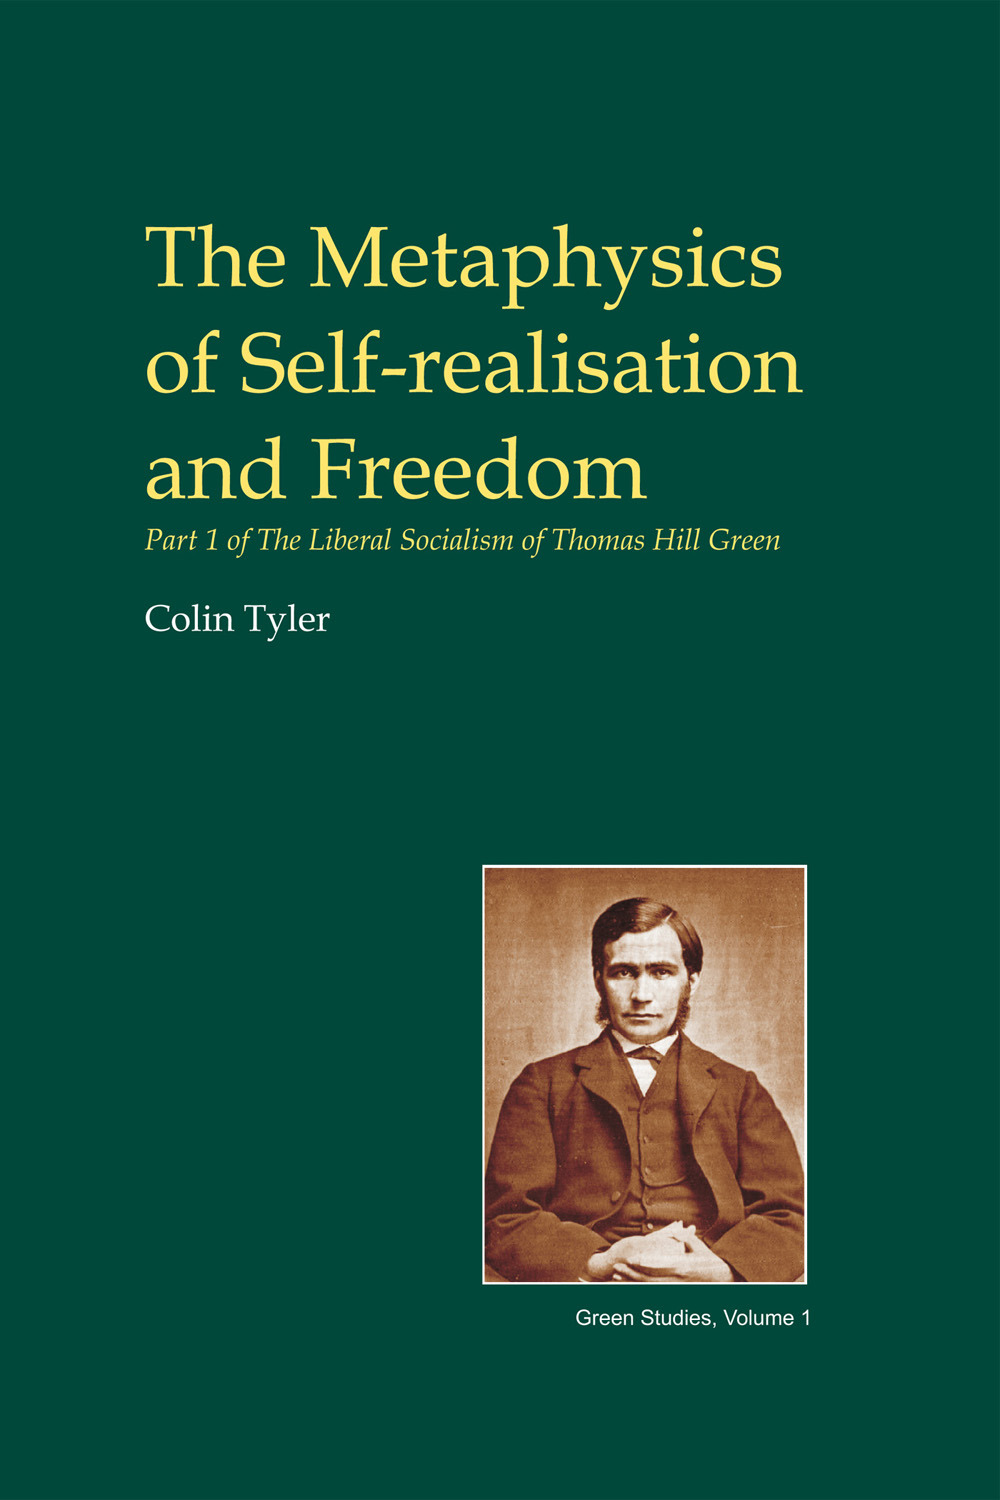 The Metaphysics of Self-realisation and Freedom